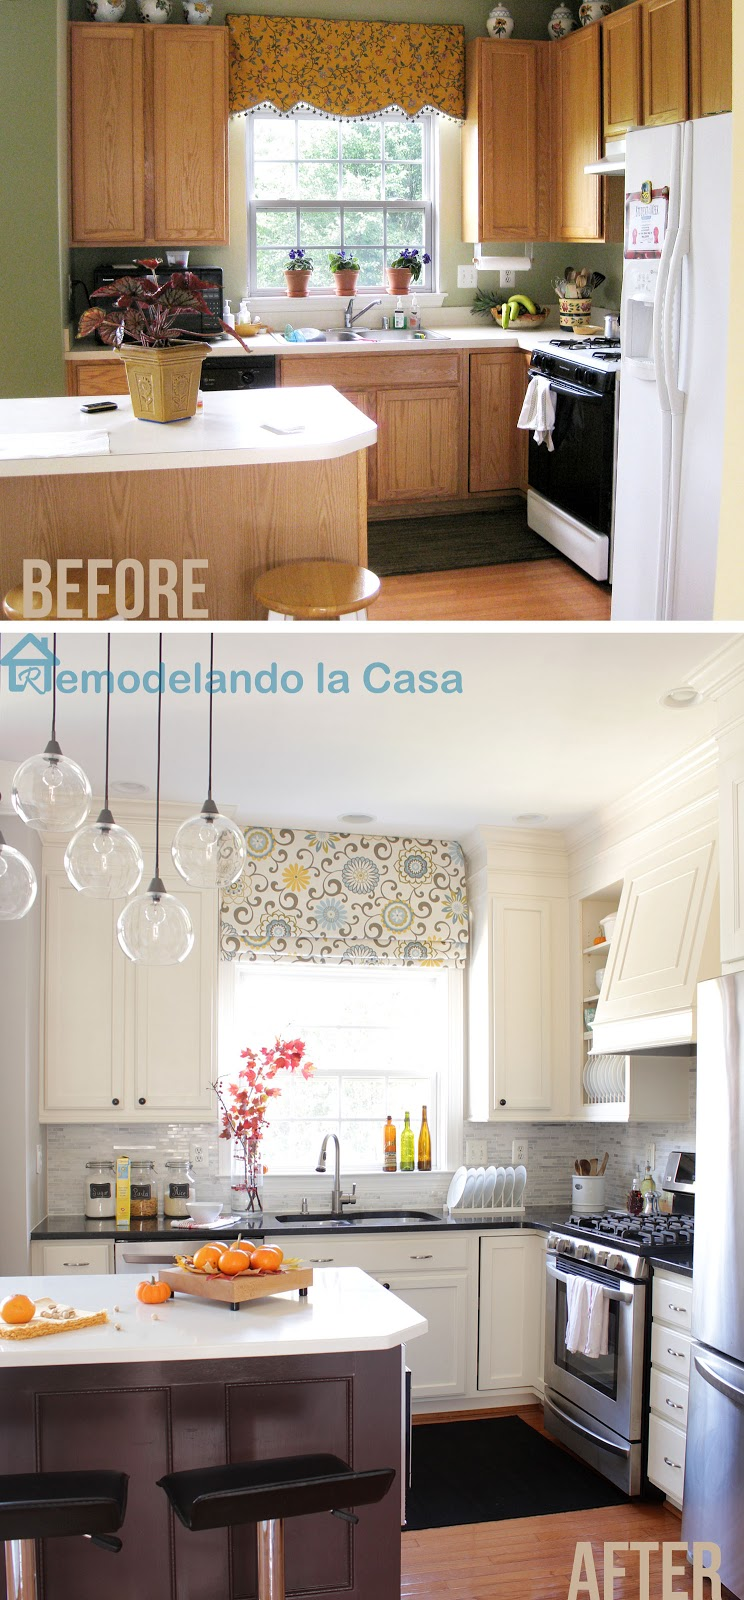 Remodelando la casa kitchen makeover for Kitchen makeover ideas